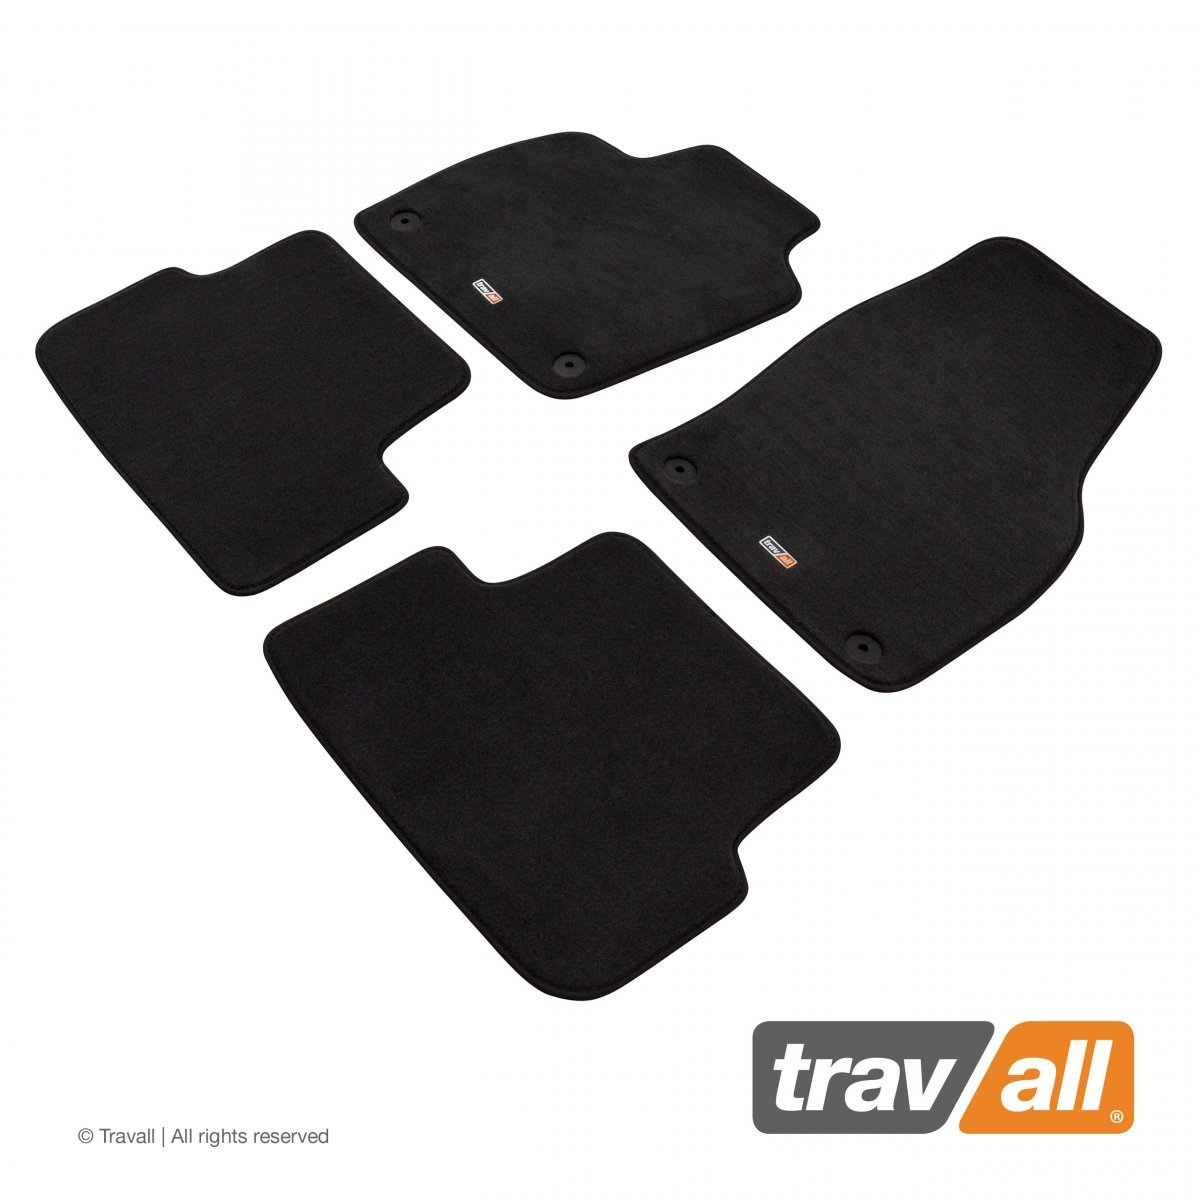 Travall® MATS [LHD] for Volkswagen Polo 5 Door Hatchback (2017 - )